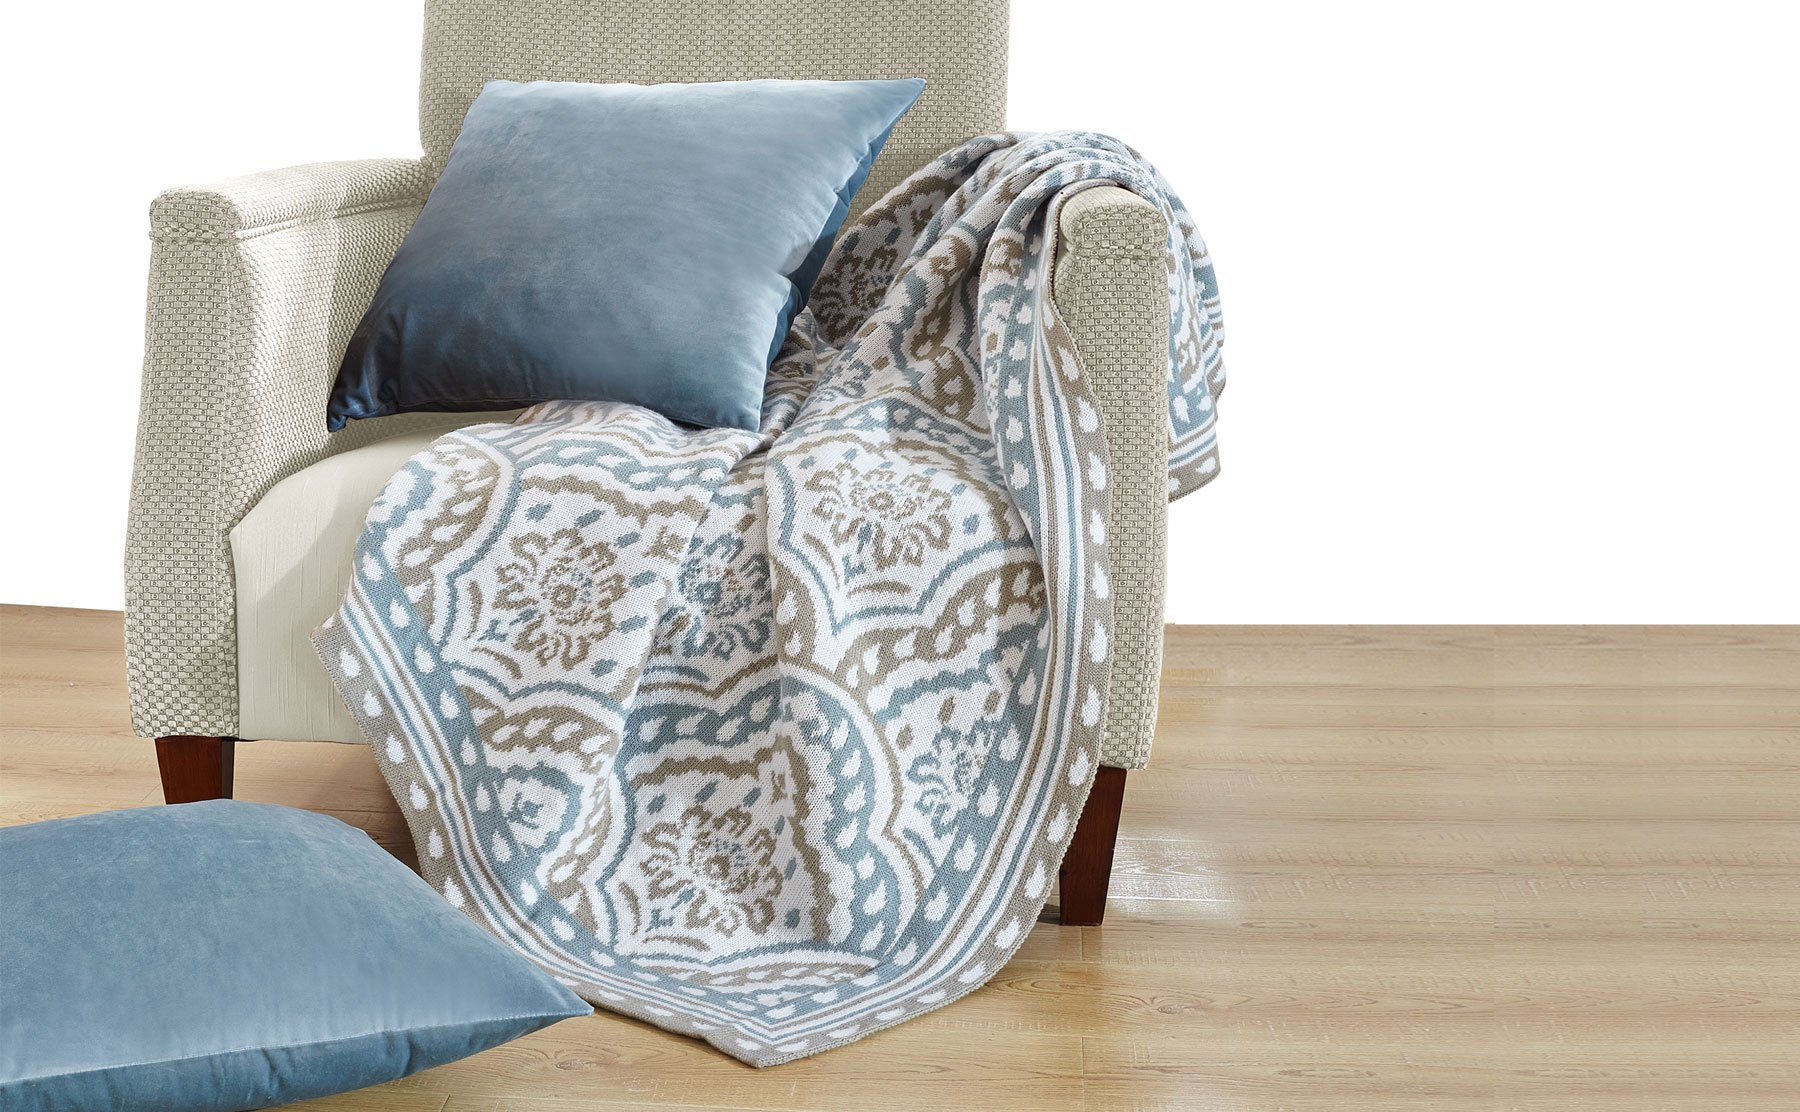 """Home Soft Things Knitted Woven Throw with 2 Pillow Shells Combo Set, Tivoli - Combo Set comes with (1) Throw & (2) Pillow Shell with Matching Color Throw Size: 50"""" x 60"""" Pillow Shell Size: 18"""" x 18"""" - blankets-throws, bedroom-sheets-comforters, bedroom - 81X9K%2Bj3SdL -"""